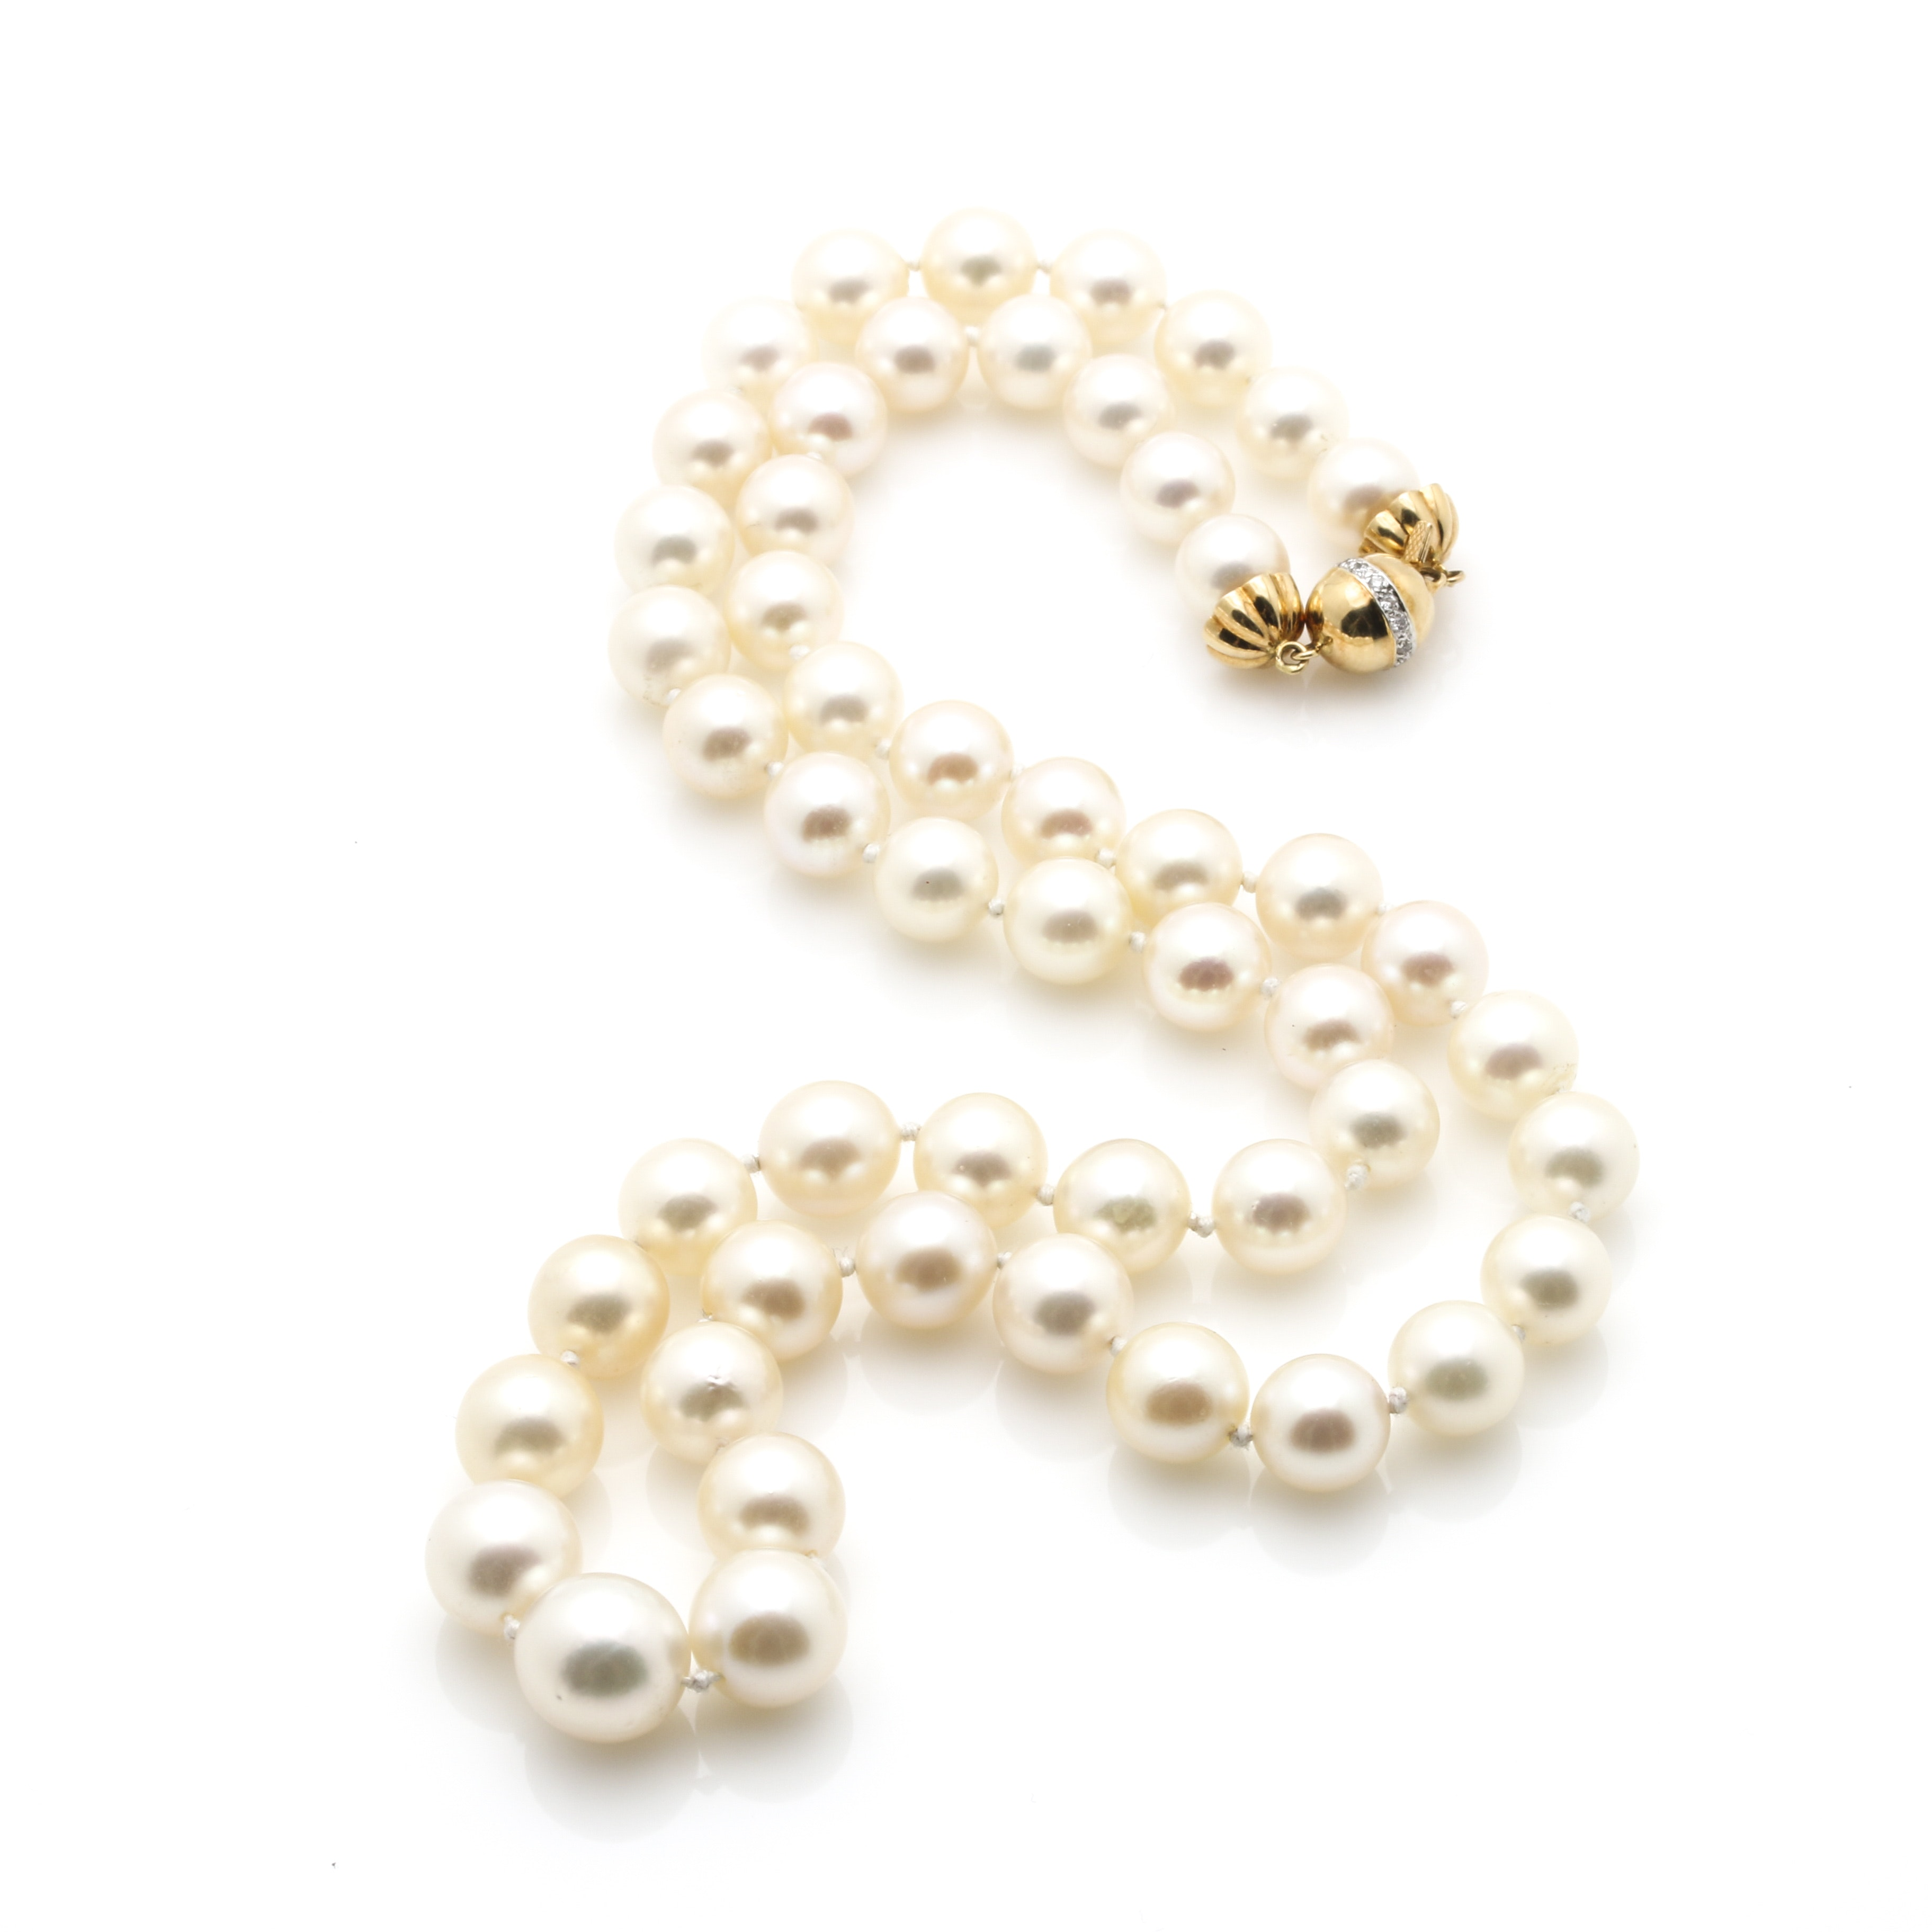 String of Pearls With 18K Yellow Gold Findings